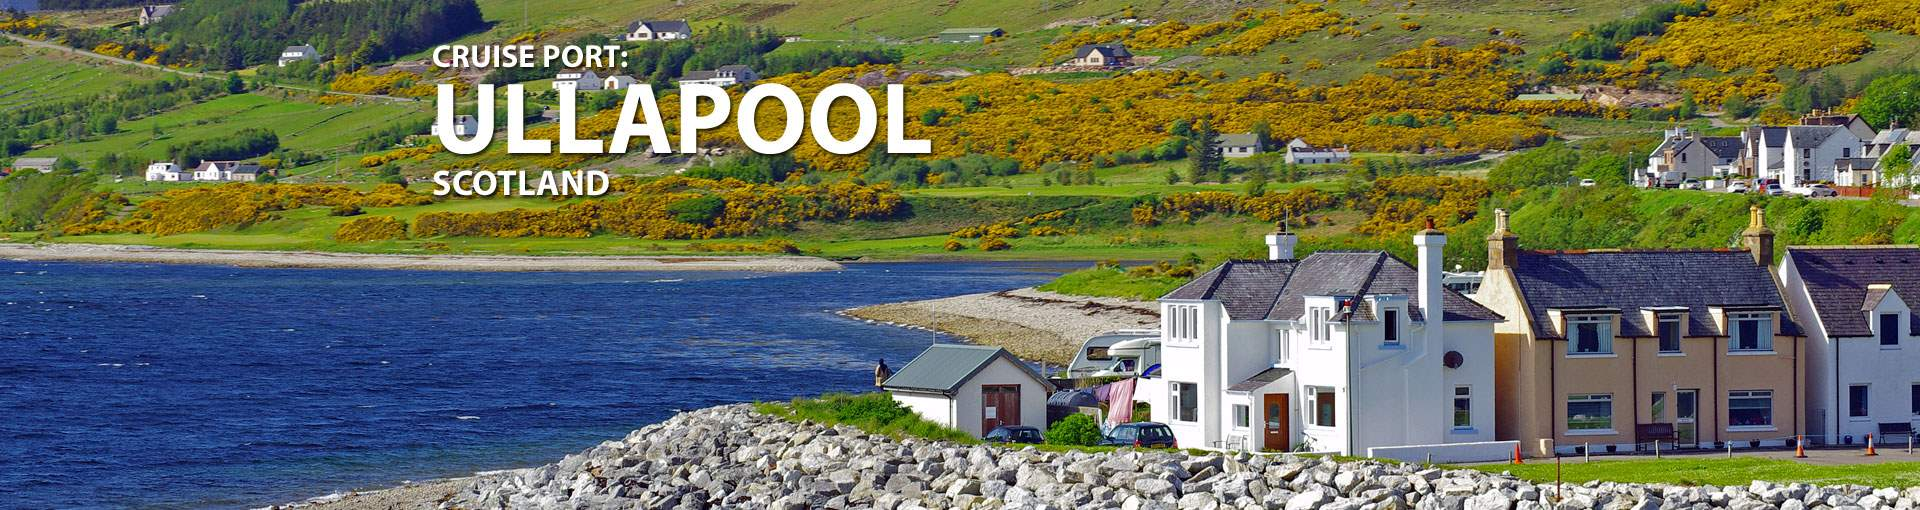 Cruises to Ullapool, Scotland